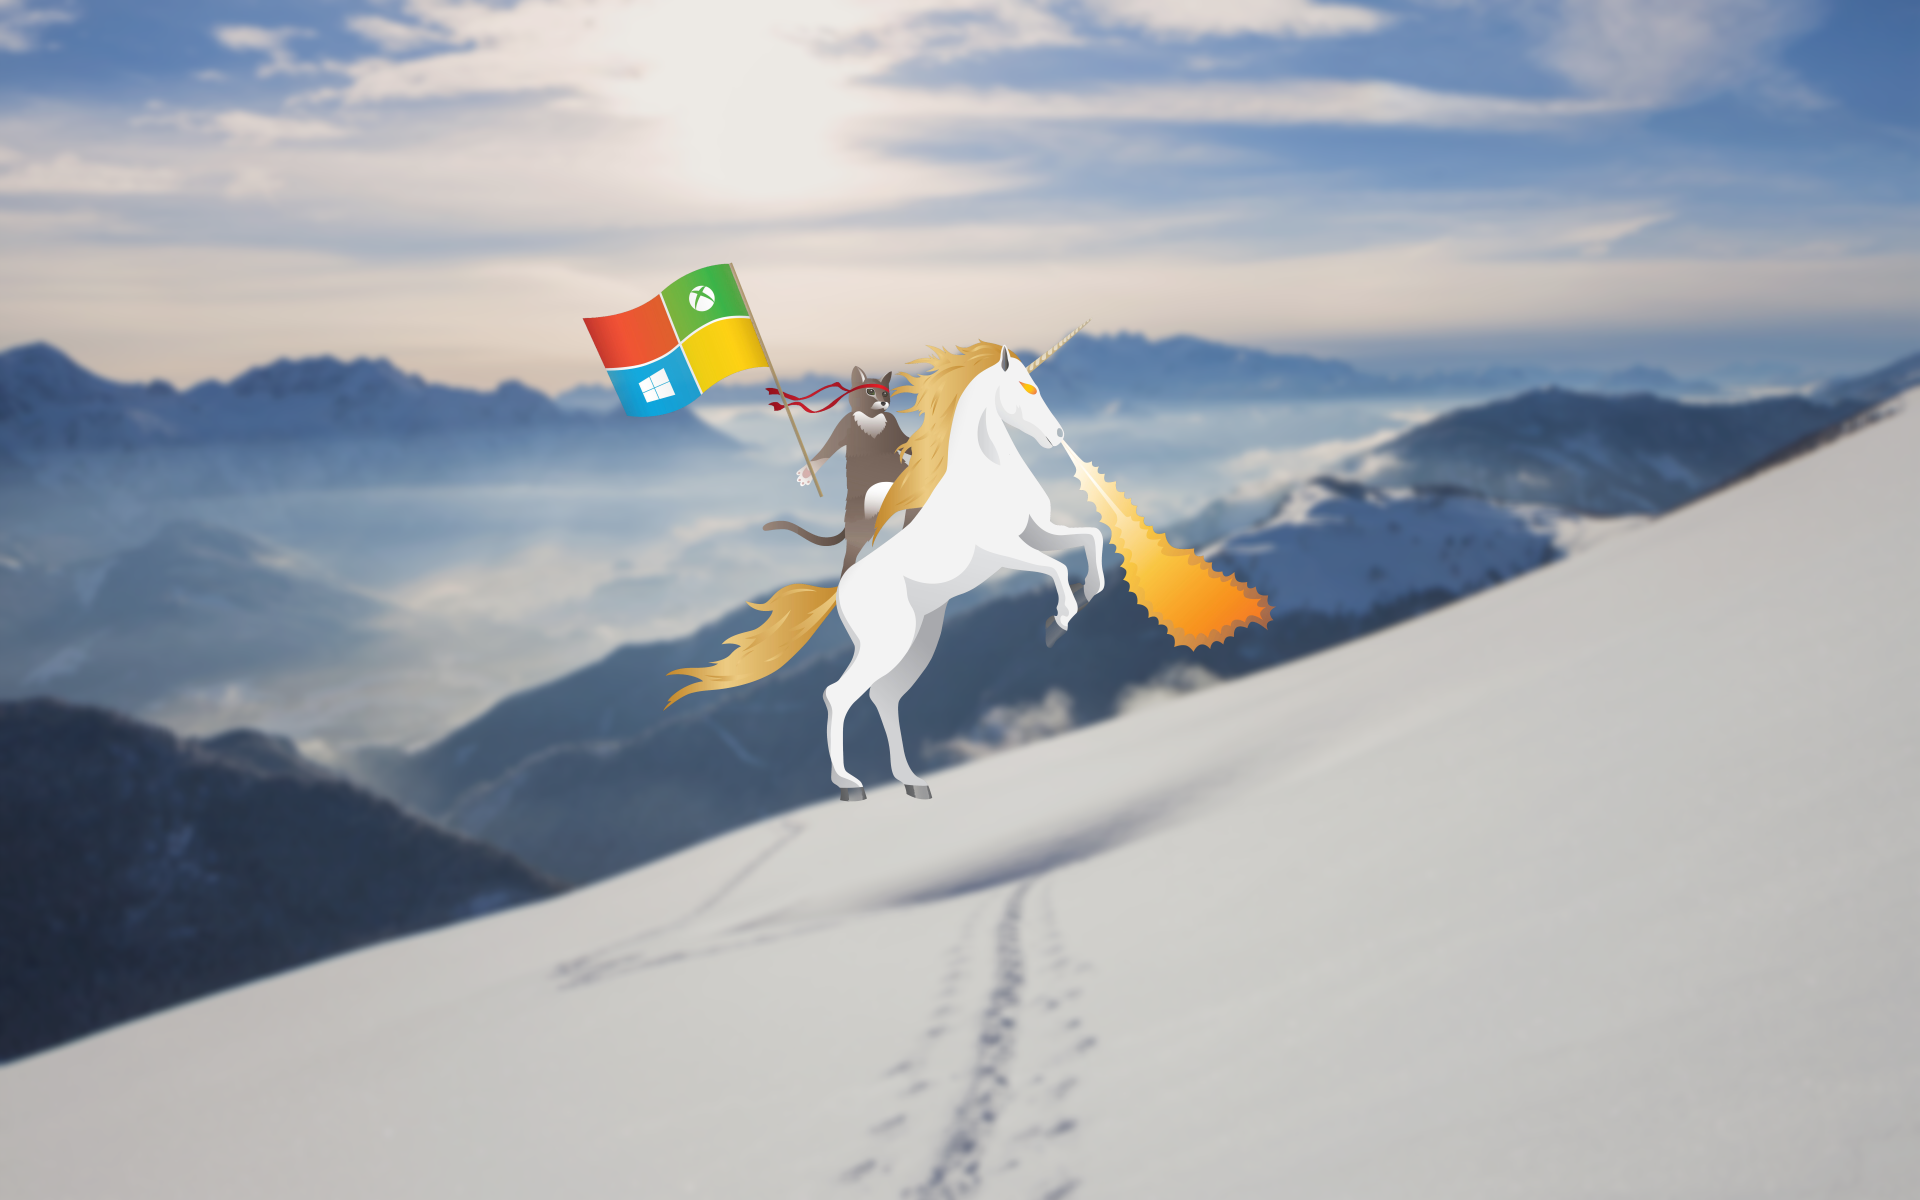 Here are a bunch of Windows 10 Ninja Cat wallpapers   Microsoft News 1920x1200